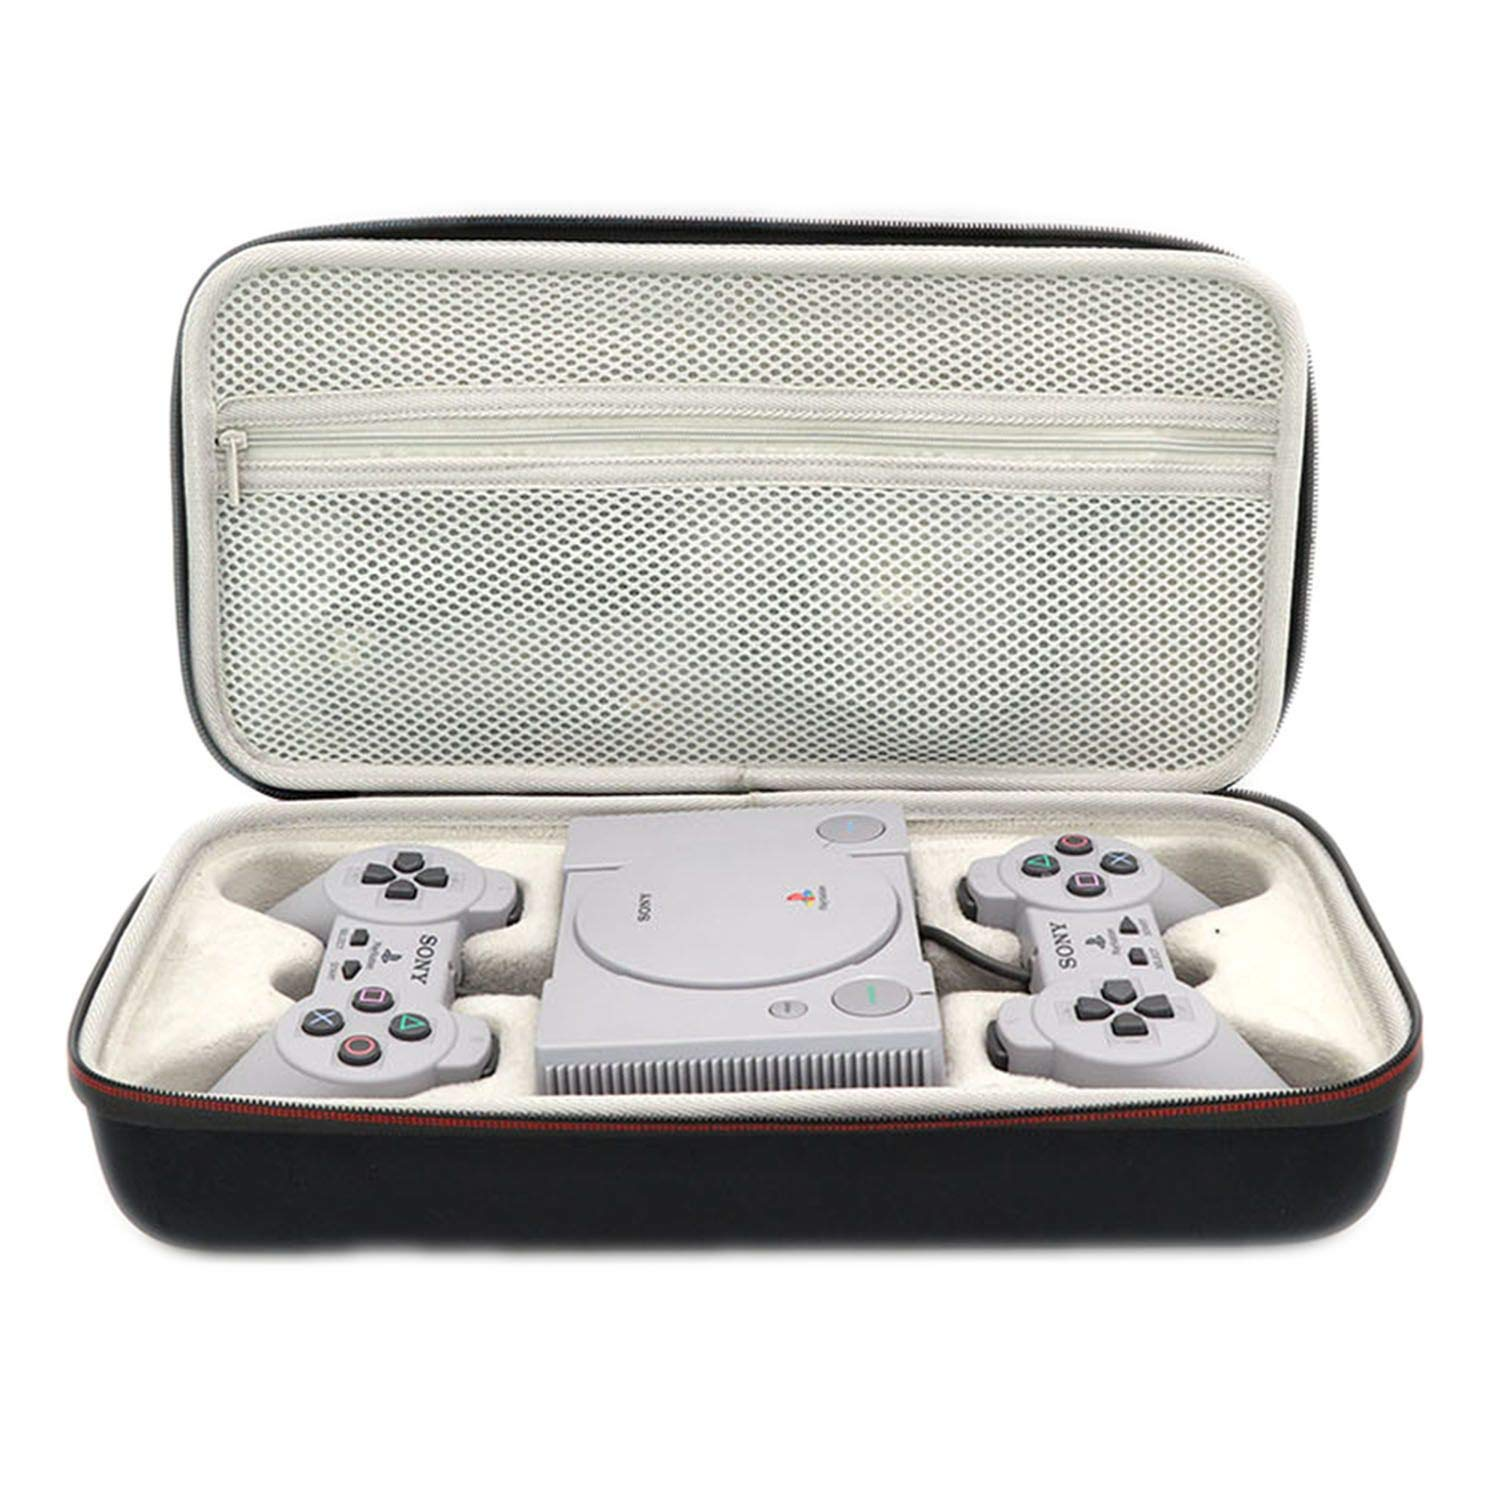 Carrying Storage Perfect Protection Case for Sony Playstation Classic Mini Console,2 Controllers and Other Accessories